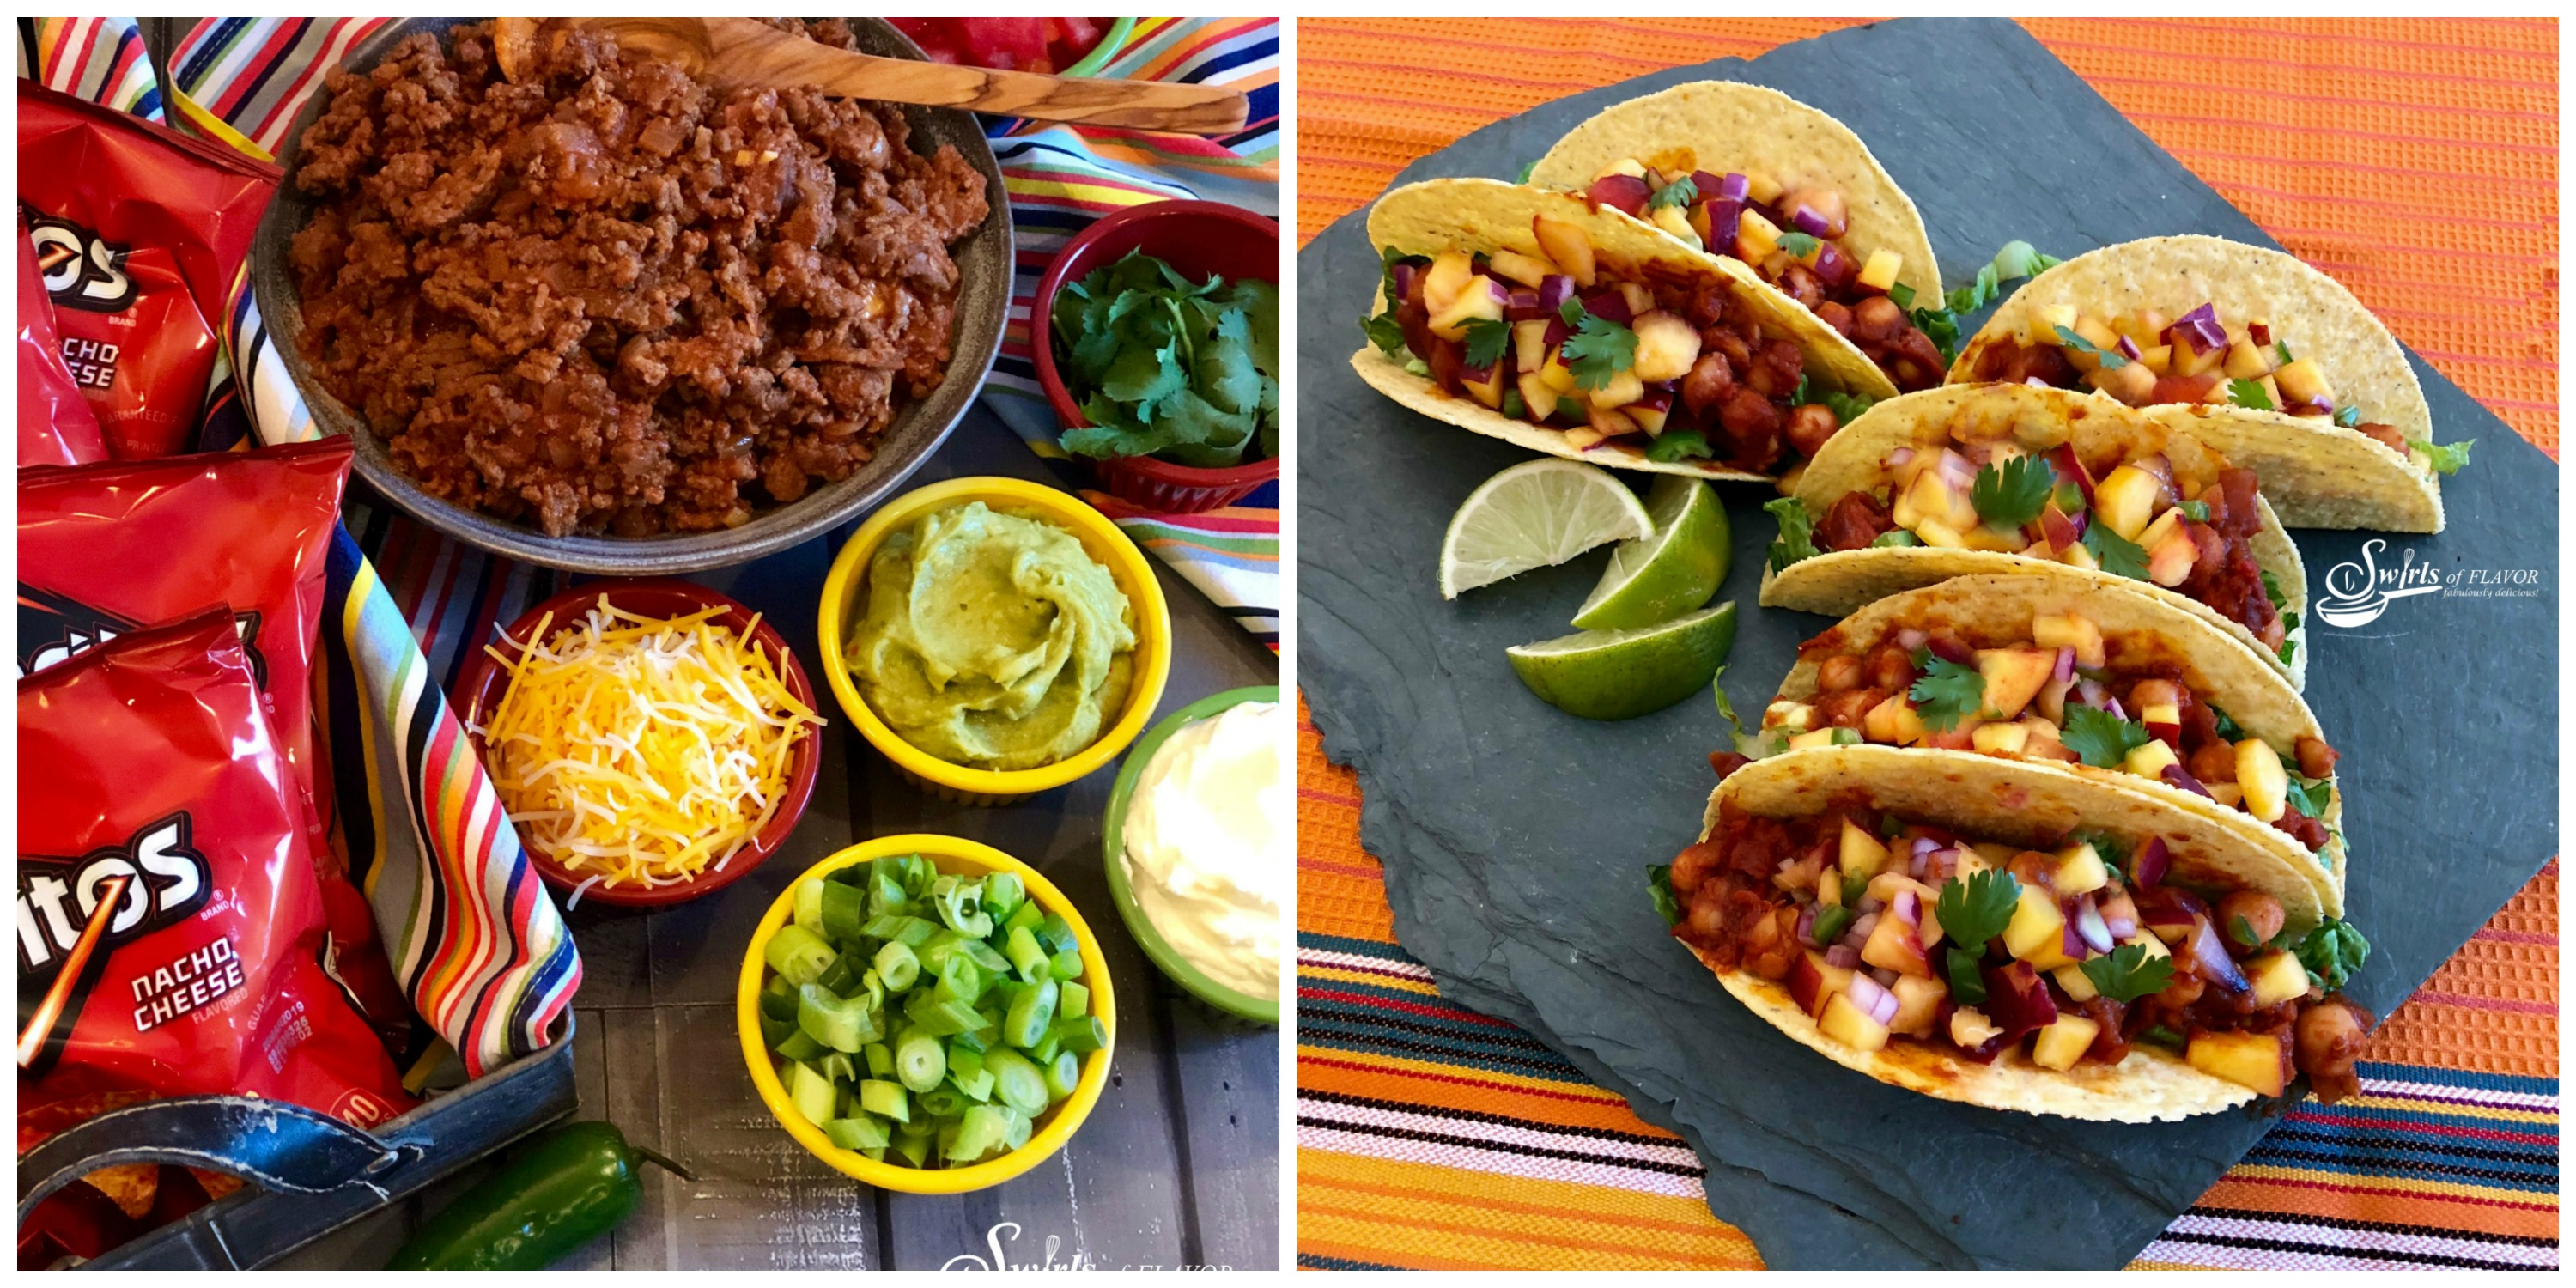 Walking Taco Bar and Vegan Tacos